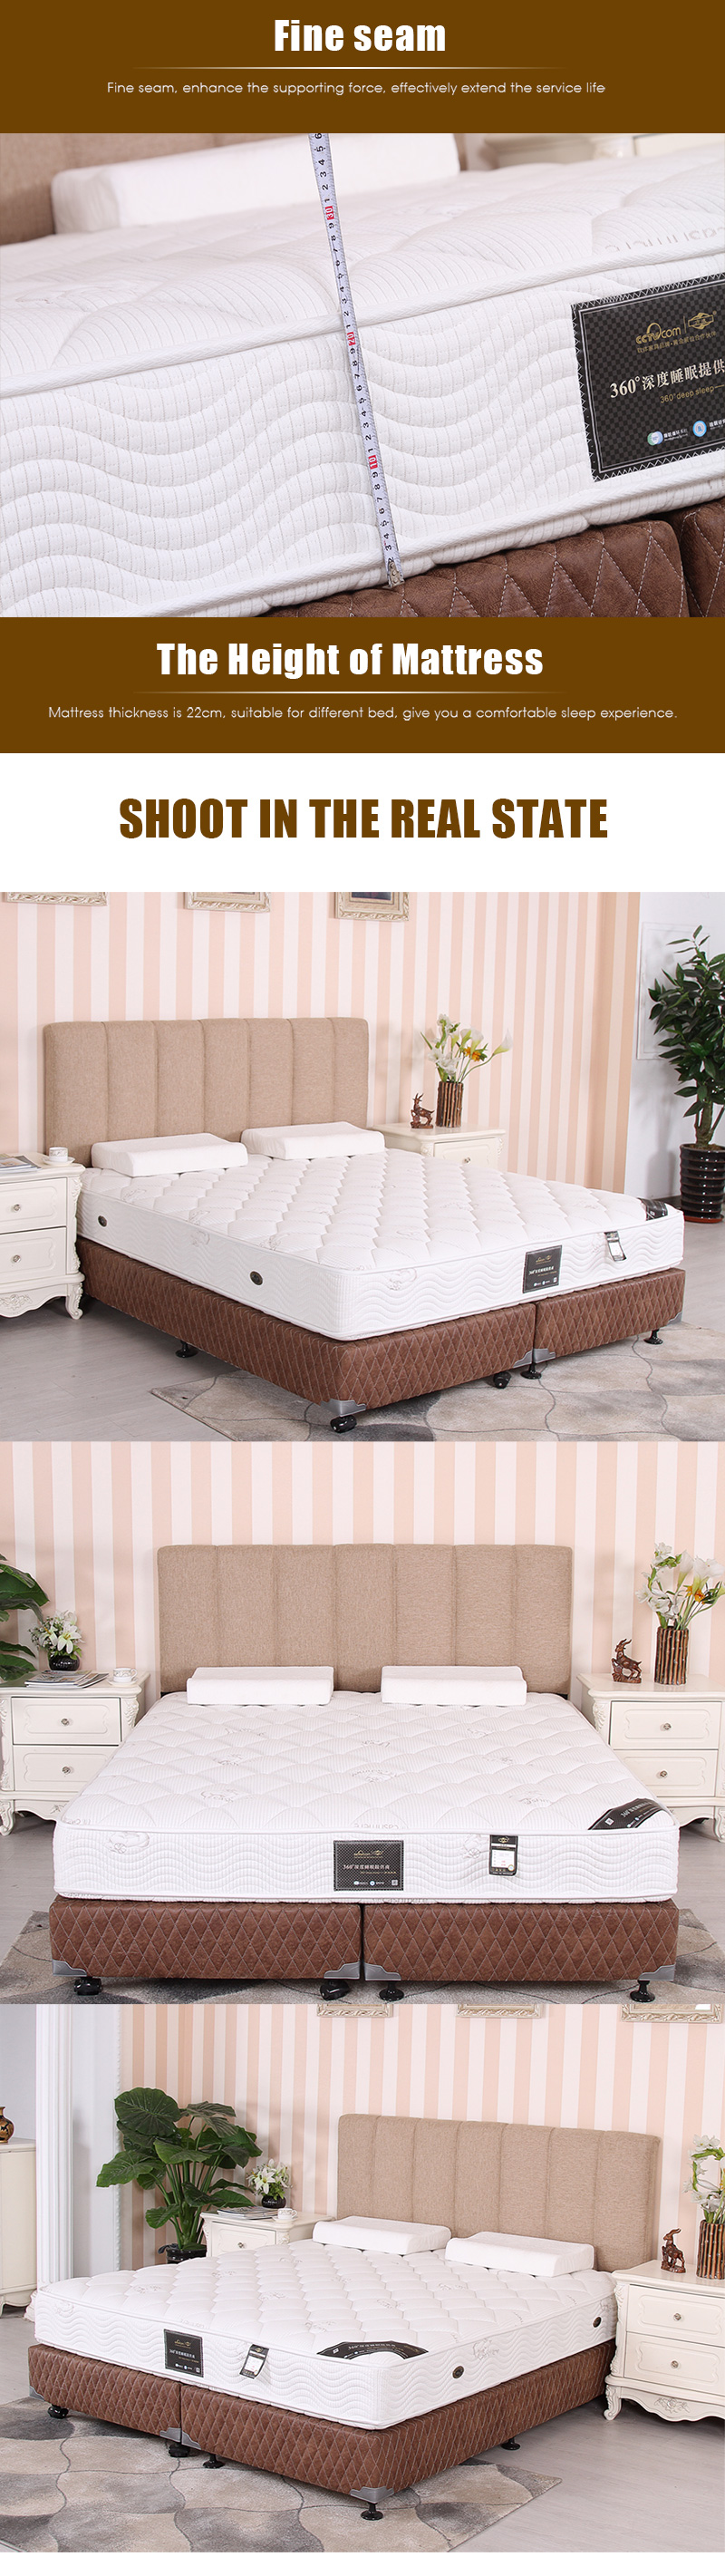 custom made mattress.jpg